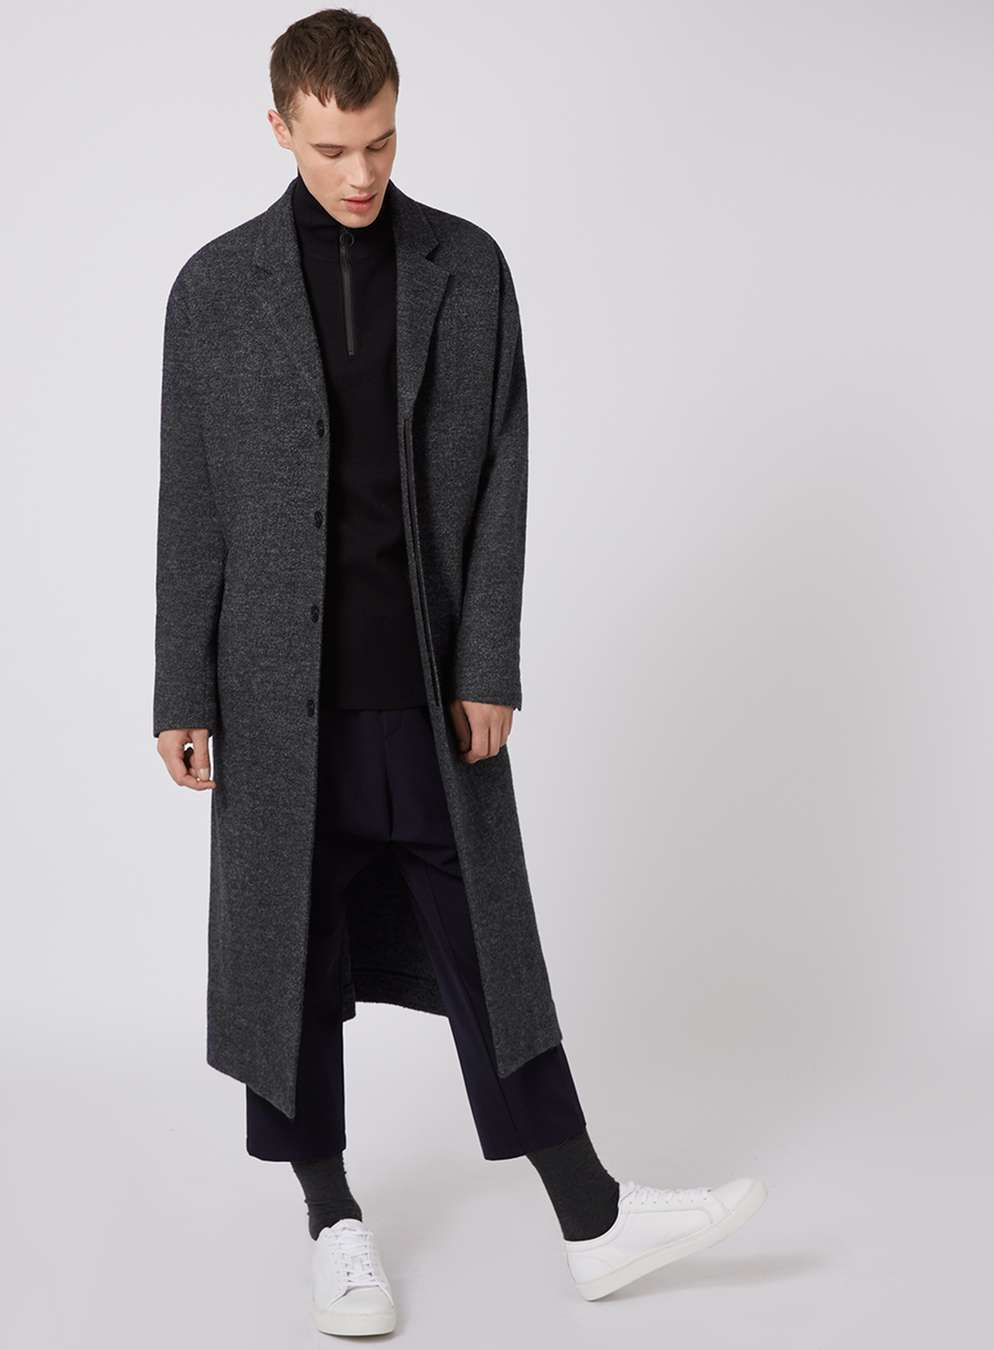 LUX mélange wool rich coat, £130 LUX funnel neck jumper, £40 LUX cropped trousers, £40